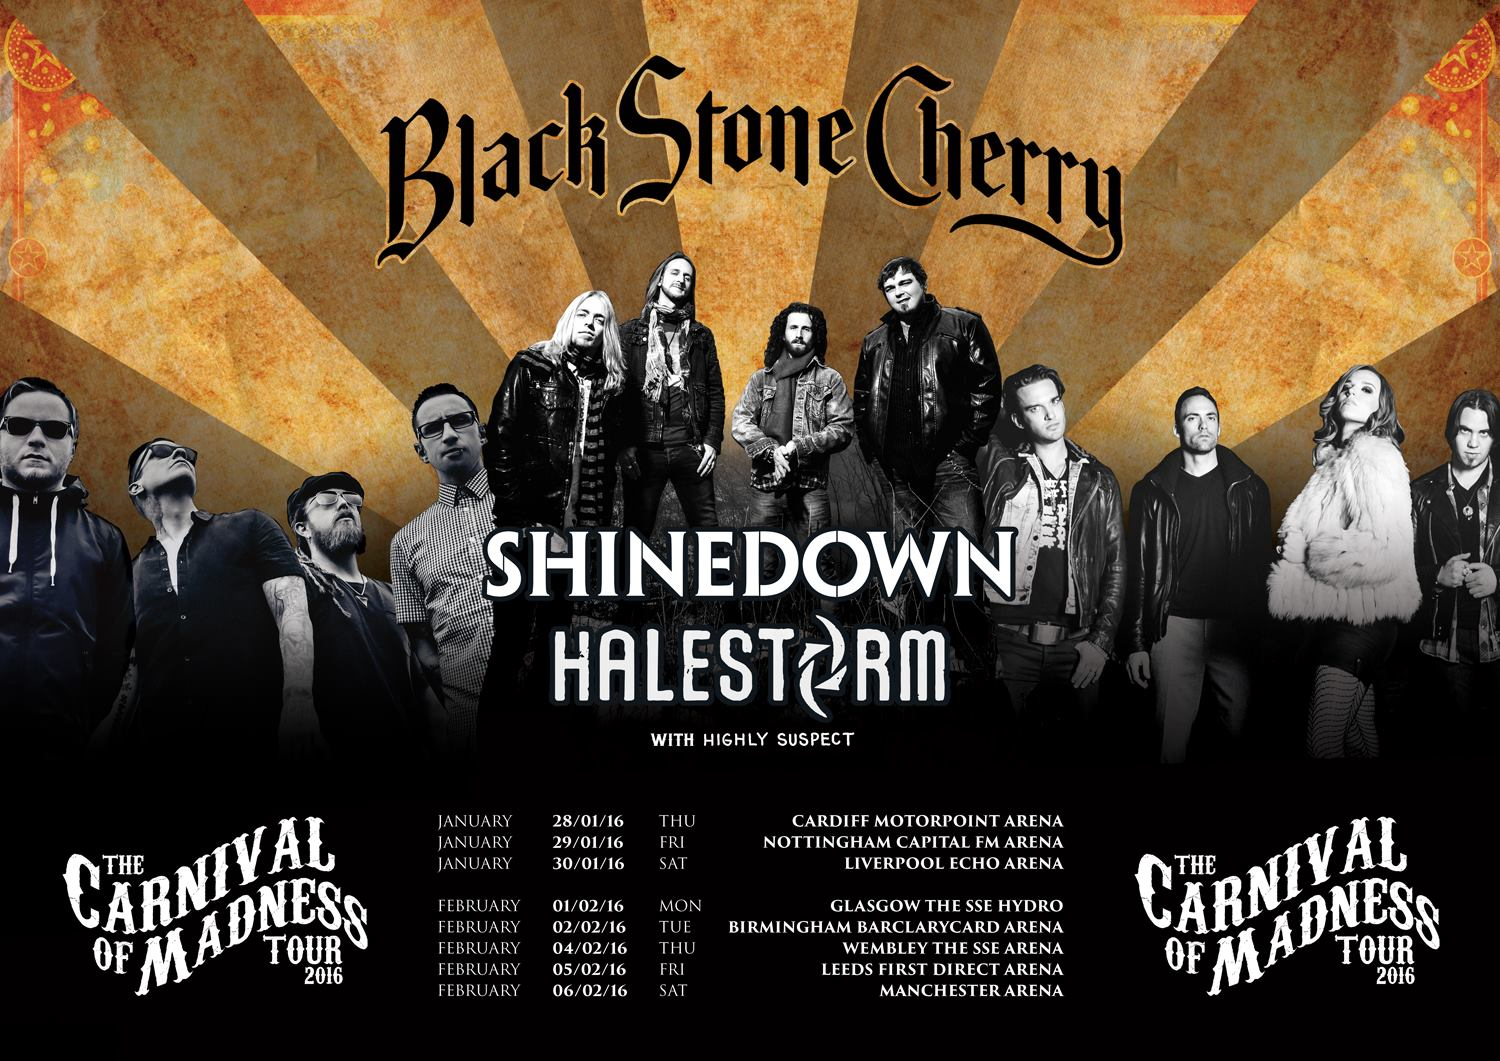 Black Stone Cherry - The Carnival of Madness Tour - poster